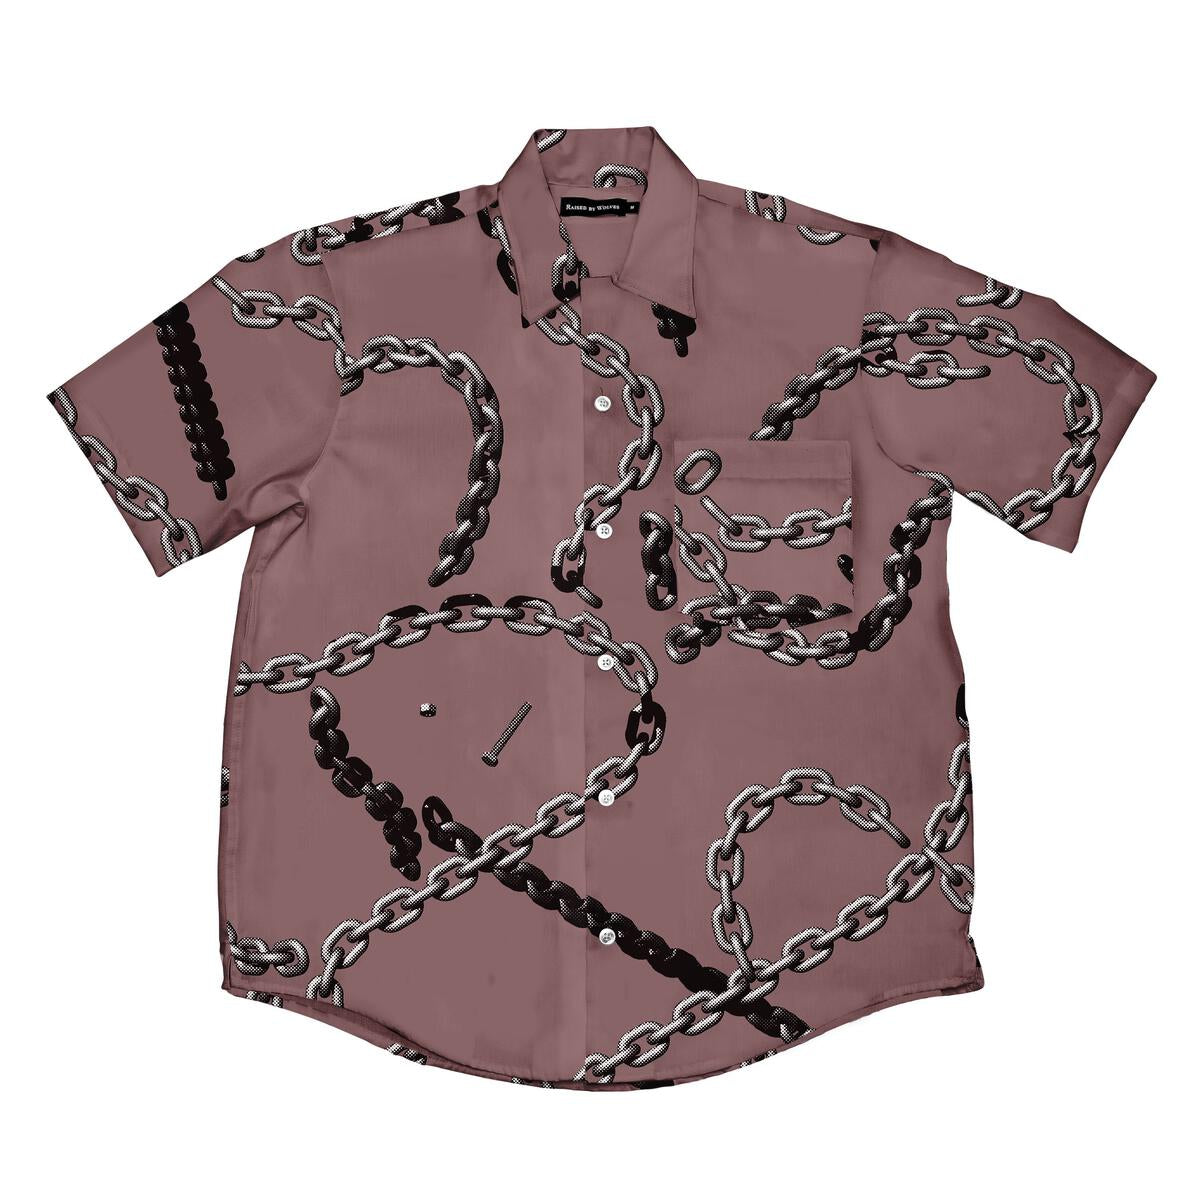 Chains Camp Shirt - Dusty Rose